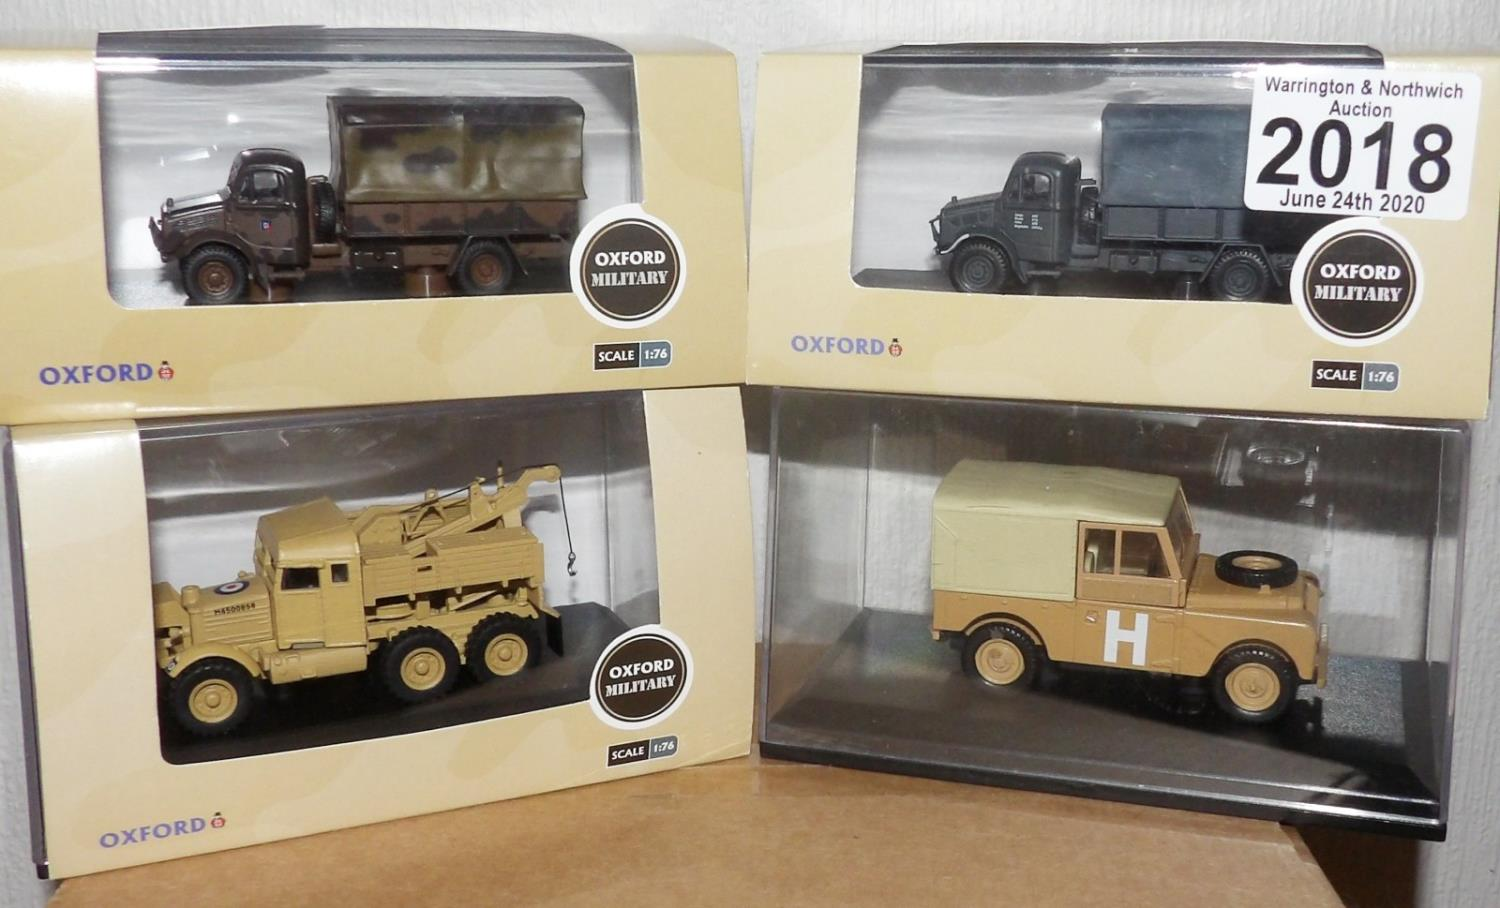 Lot 2018 - Oxford 1.76 Scale x 4 Mixed Military Vehicles. P&P Group 2 (£18+VAT for the first lot and £2+VAT for